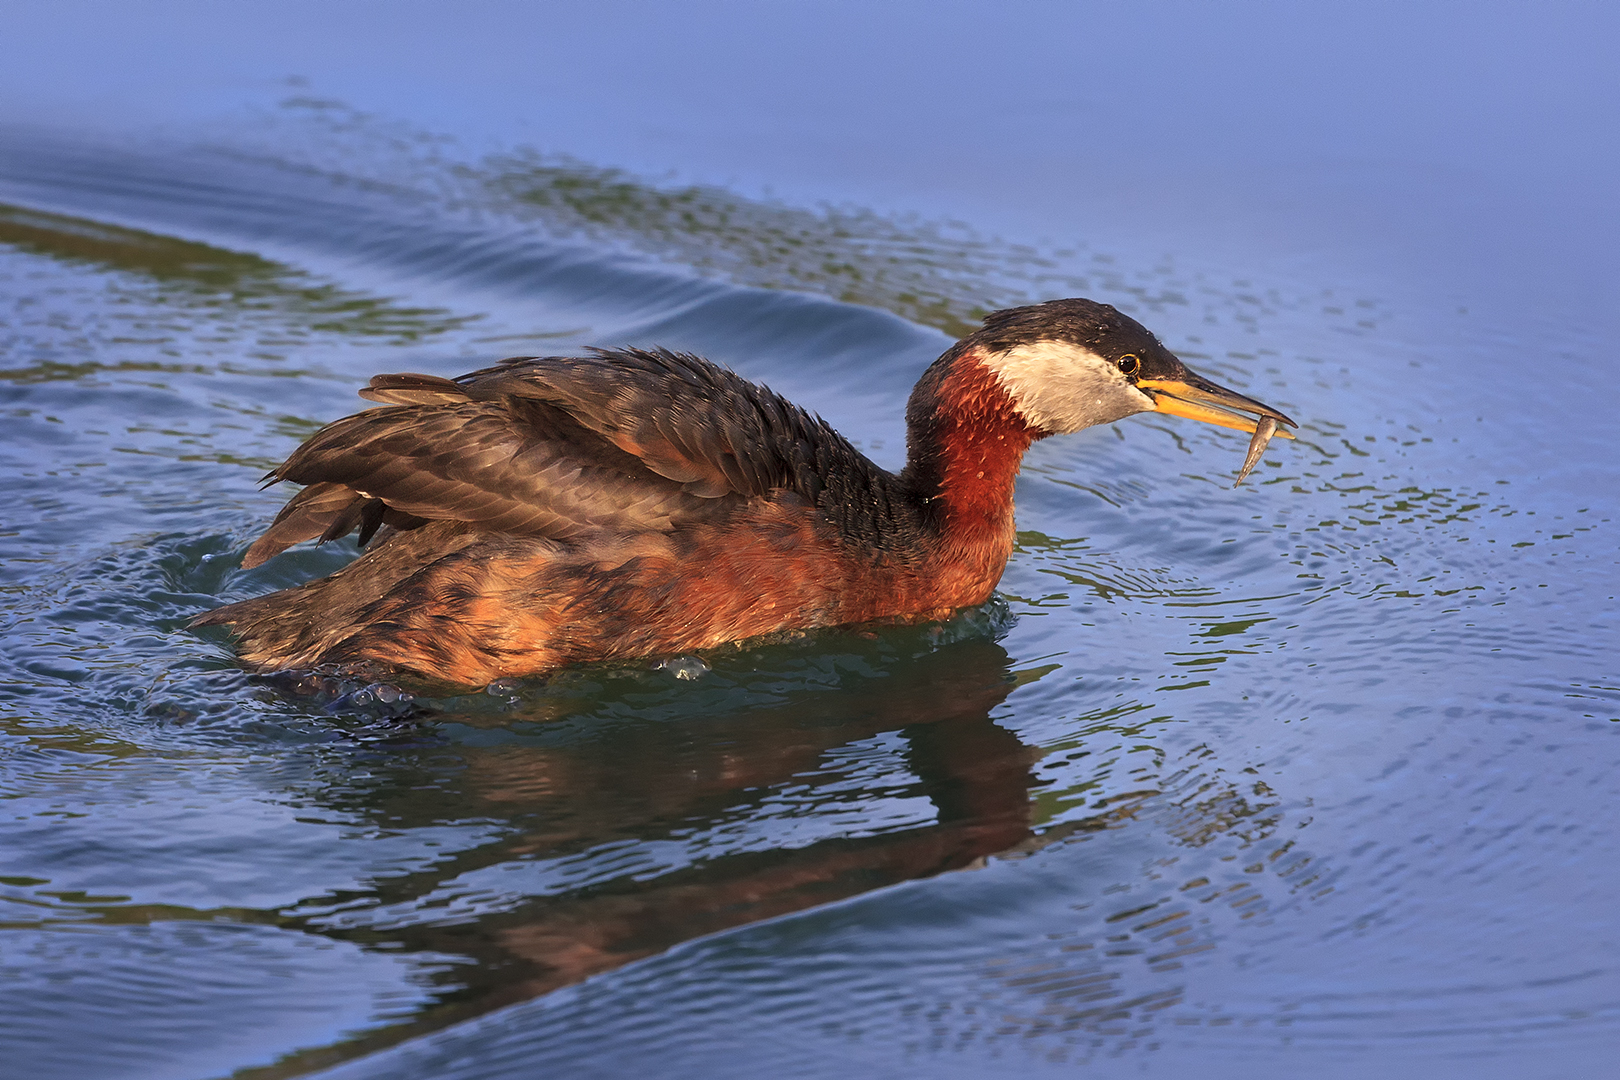 Eros Fiacconi – Red Neck Grebe with Catch – HM